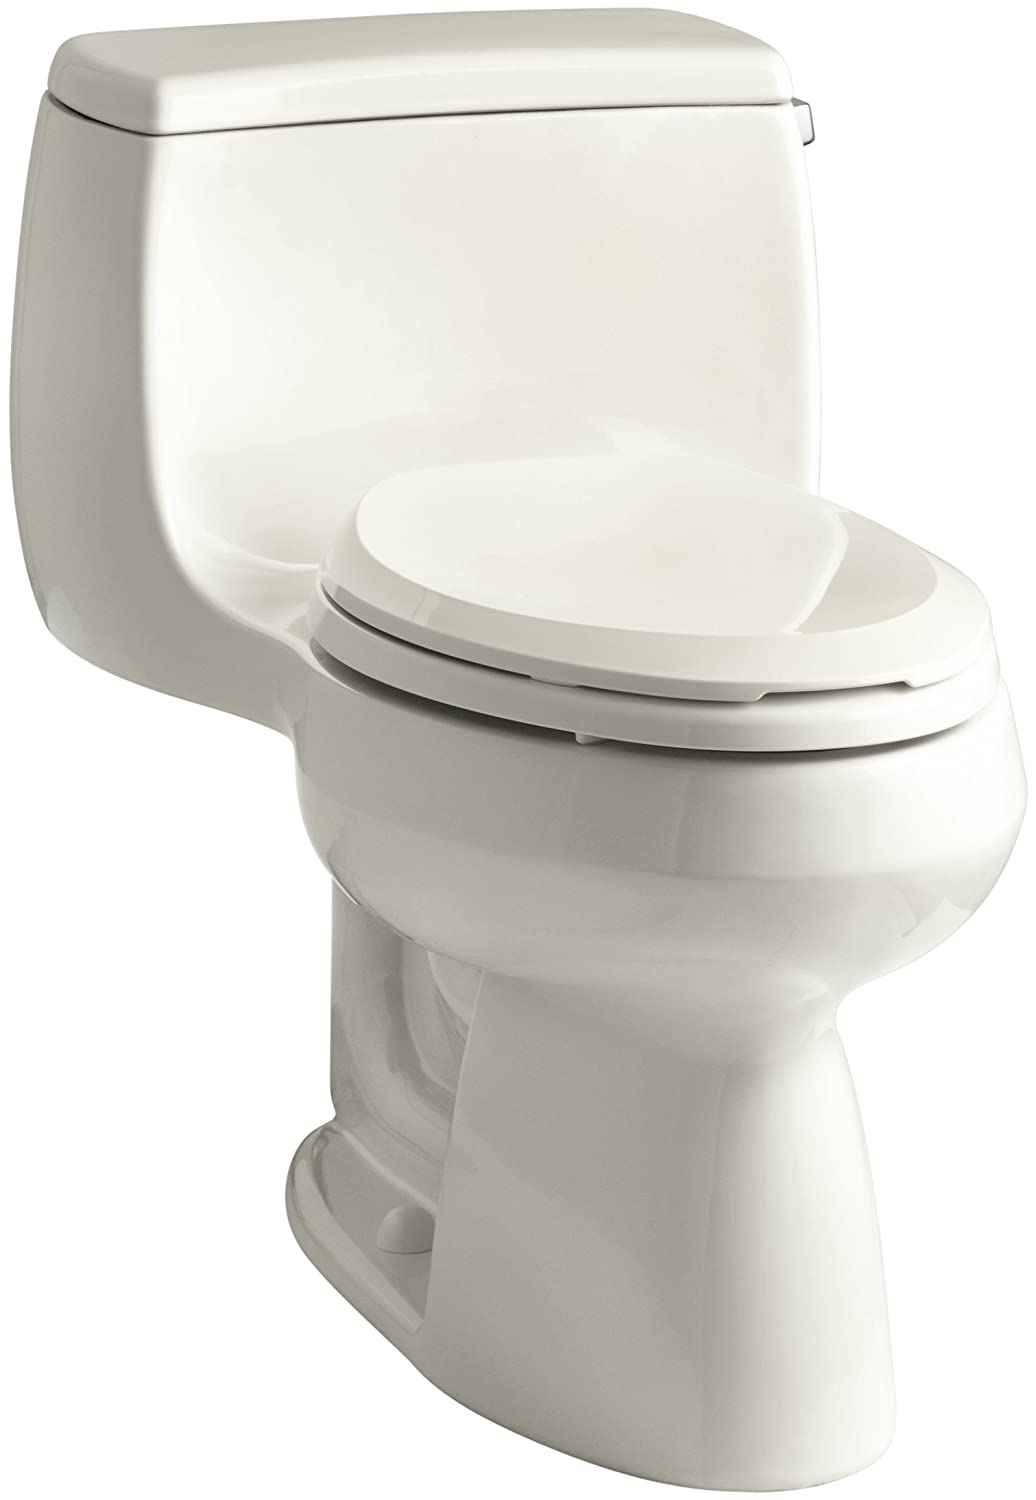 KOHLER K 3615 RA 0 Gabrielle Comfort Height One Piece Elongated 128 GPF Toilet With AquaPiston Flush Technology And Right Hand Trip Lever